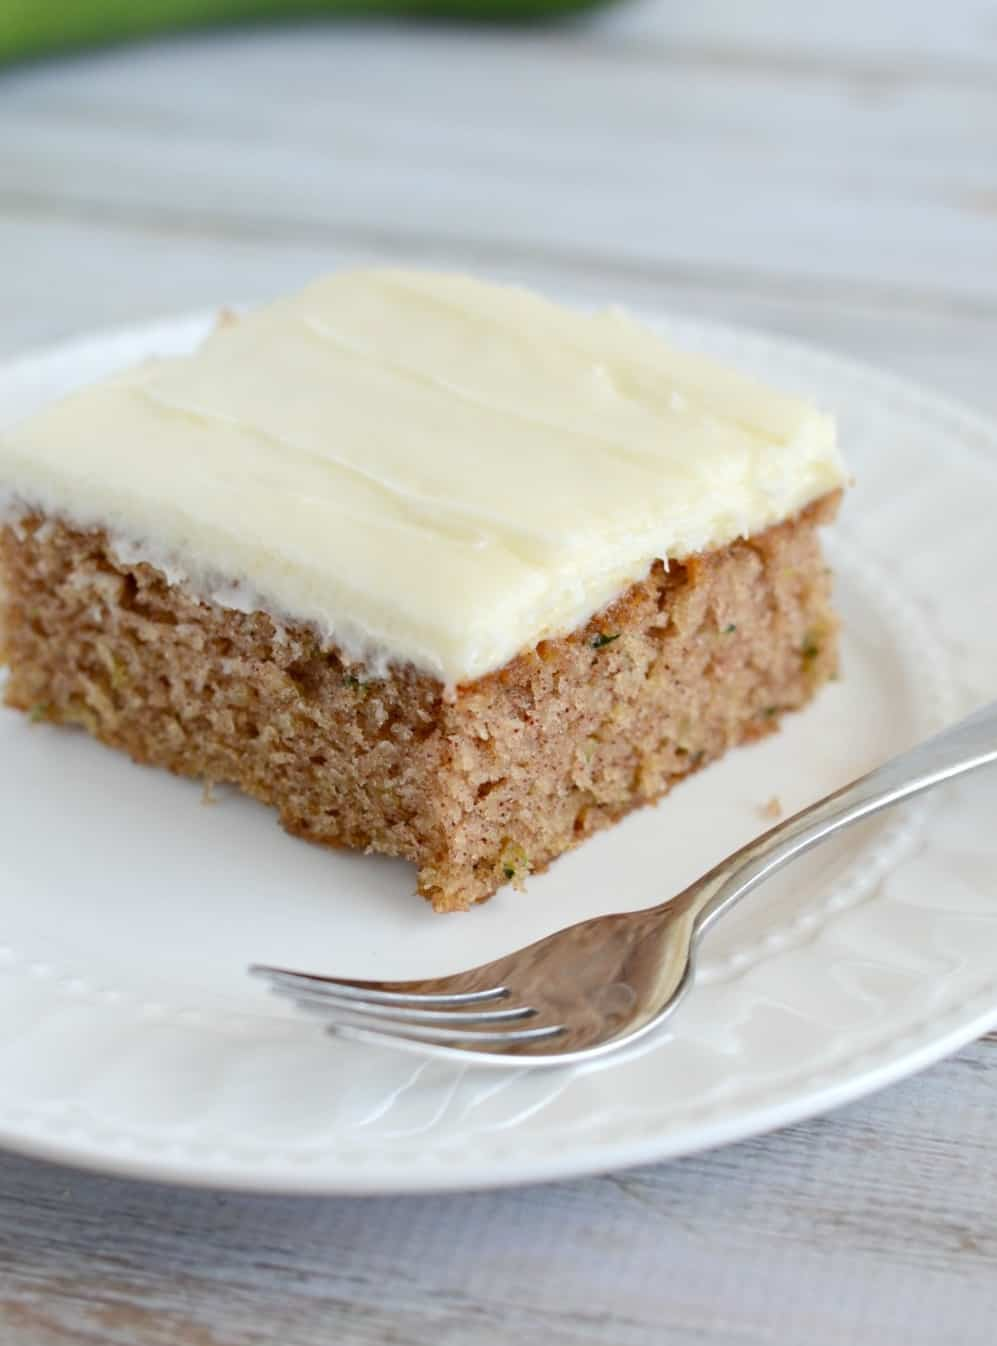 zucchini cinnamon cake on a plate with a fork